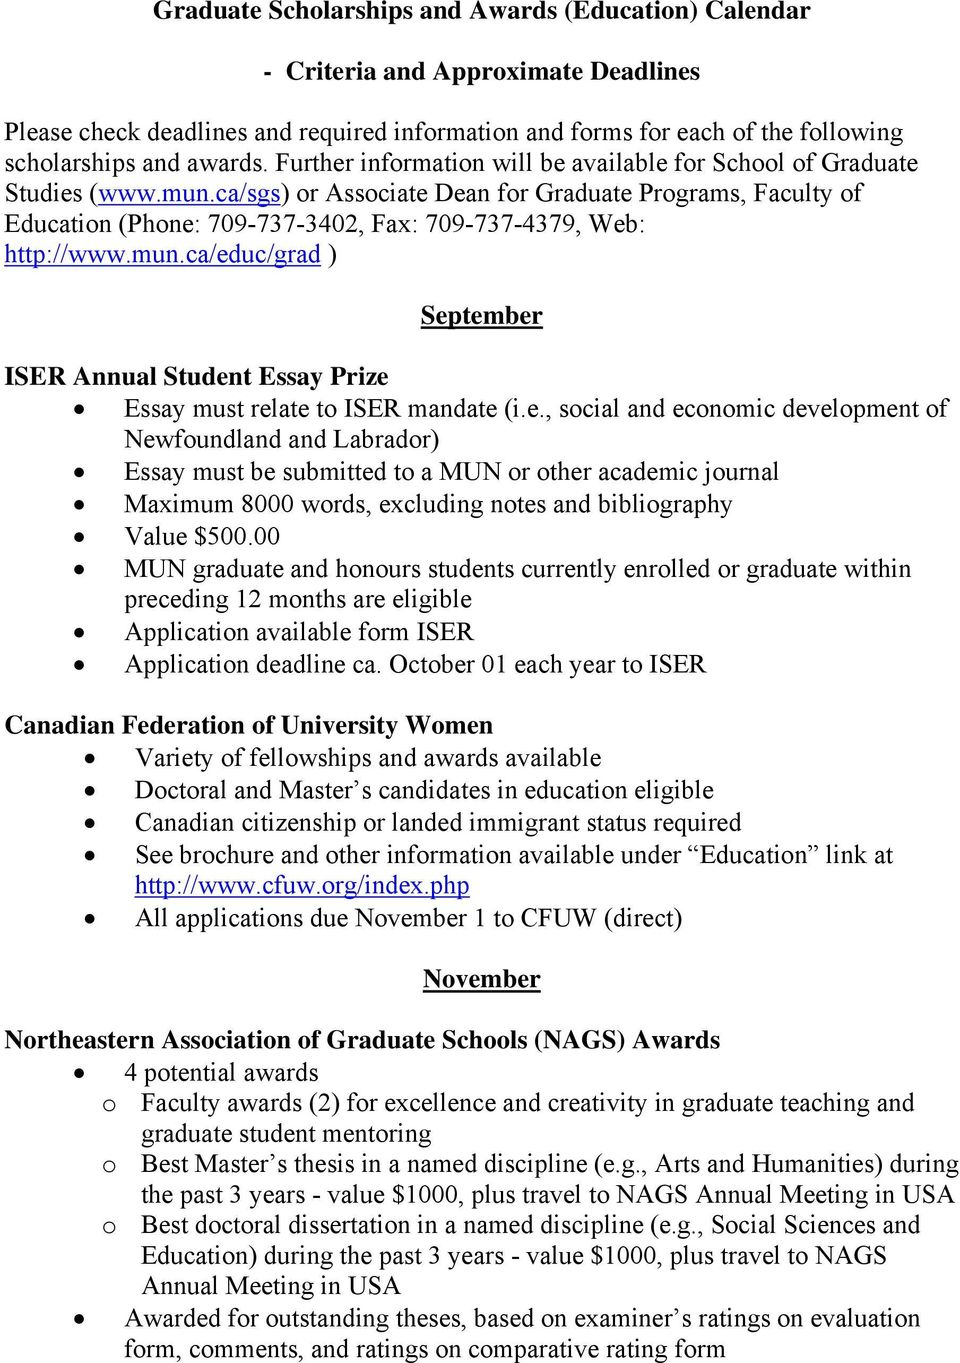 ca/sgs) or Associate Dean for Graduate Programs, Faculty of Education (Phone: 709-737-3402, Fax: 709-737-4379, Web: http://www.mun.